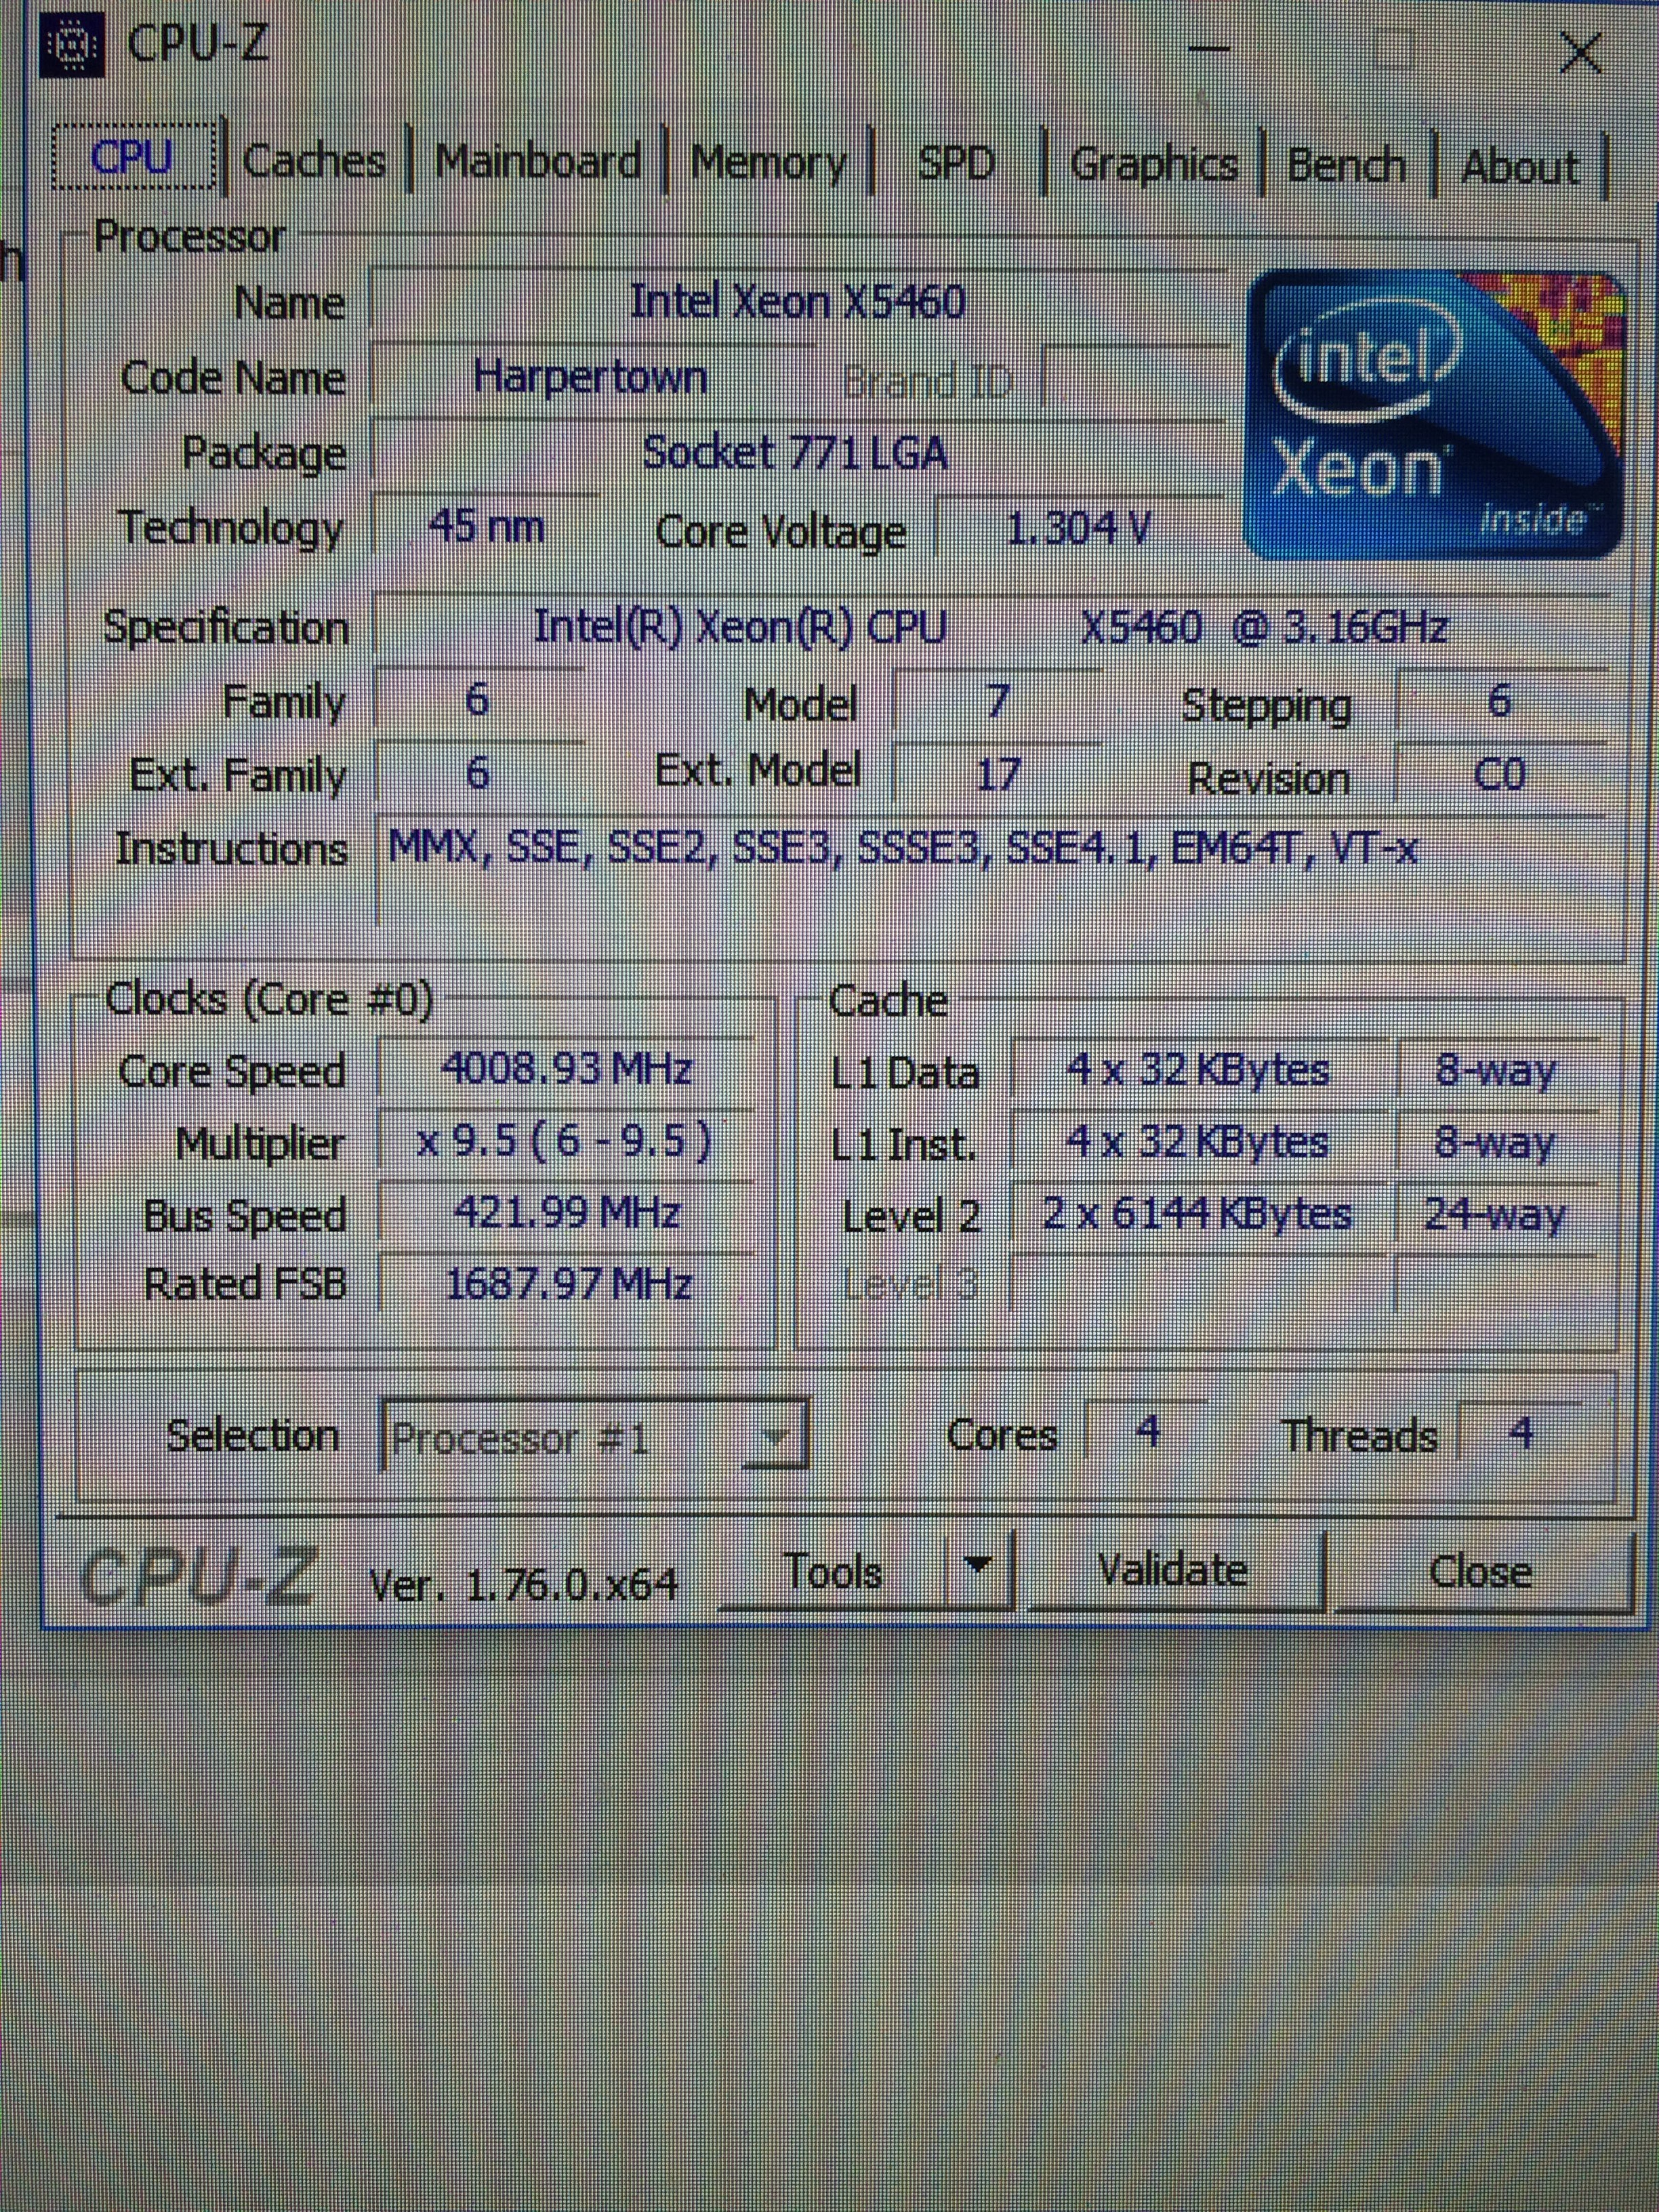 LGA 771 to 775 mod? - Page 2 - CPUs, Motherboards, and